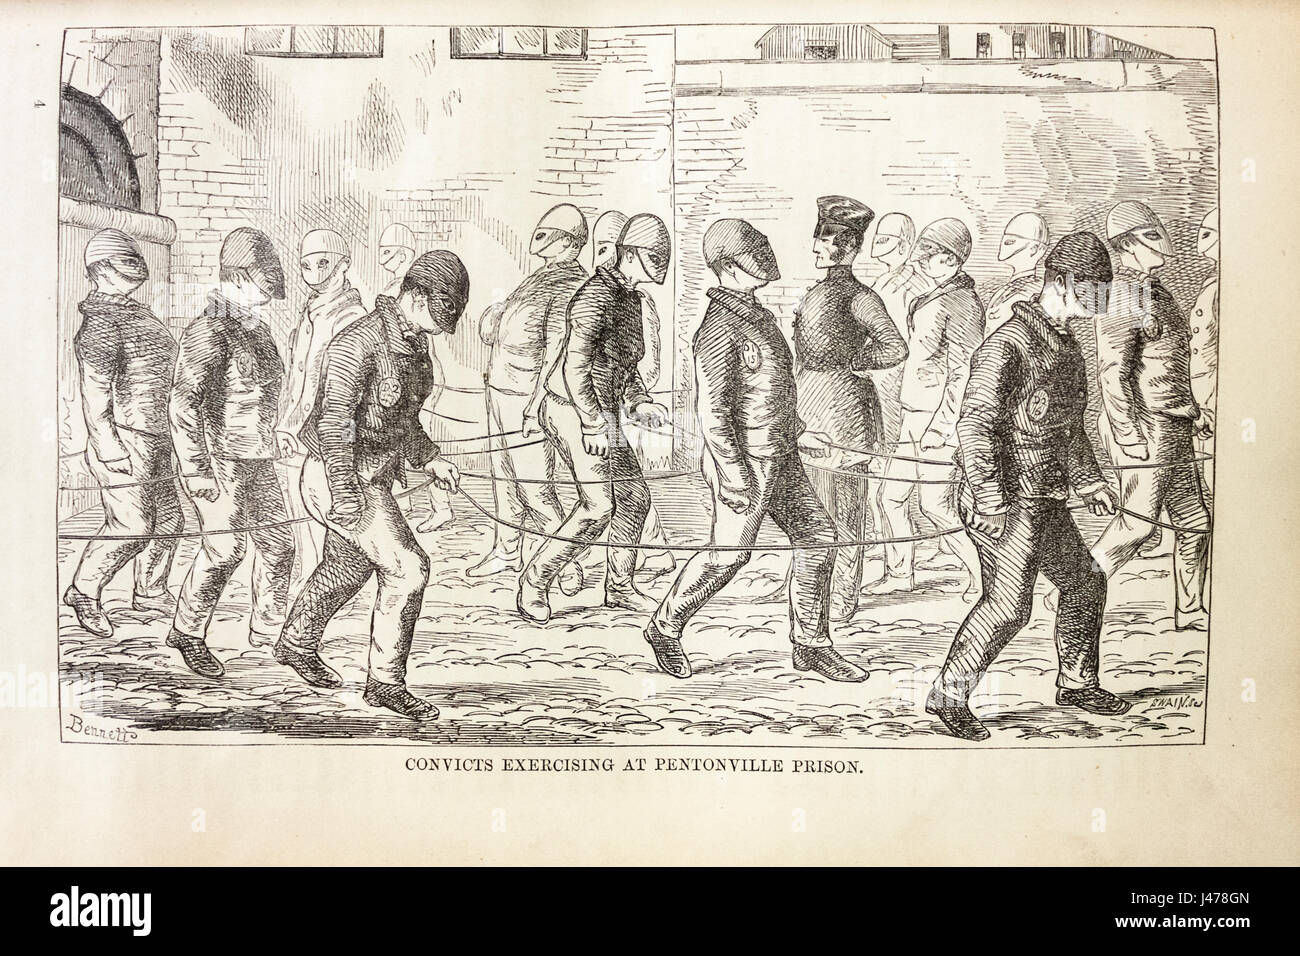 Convicts exercising at Pentonville Prison by the artist Bennetto, published in 'The Criminal Prisons of London - Stock Image